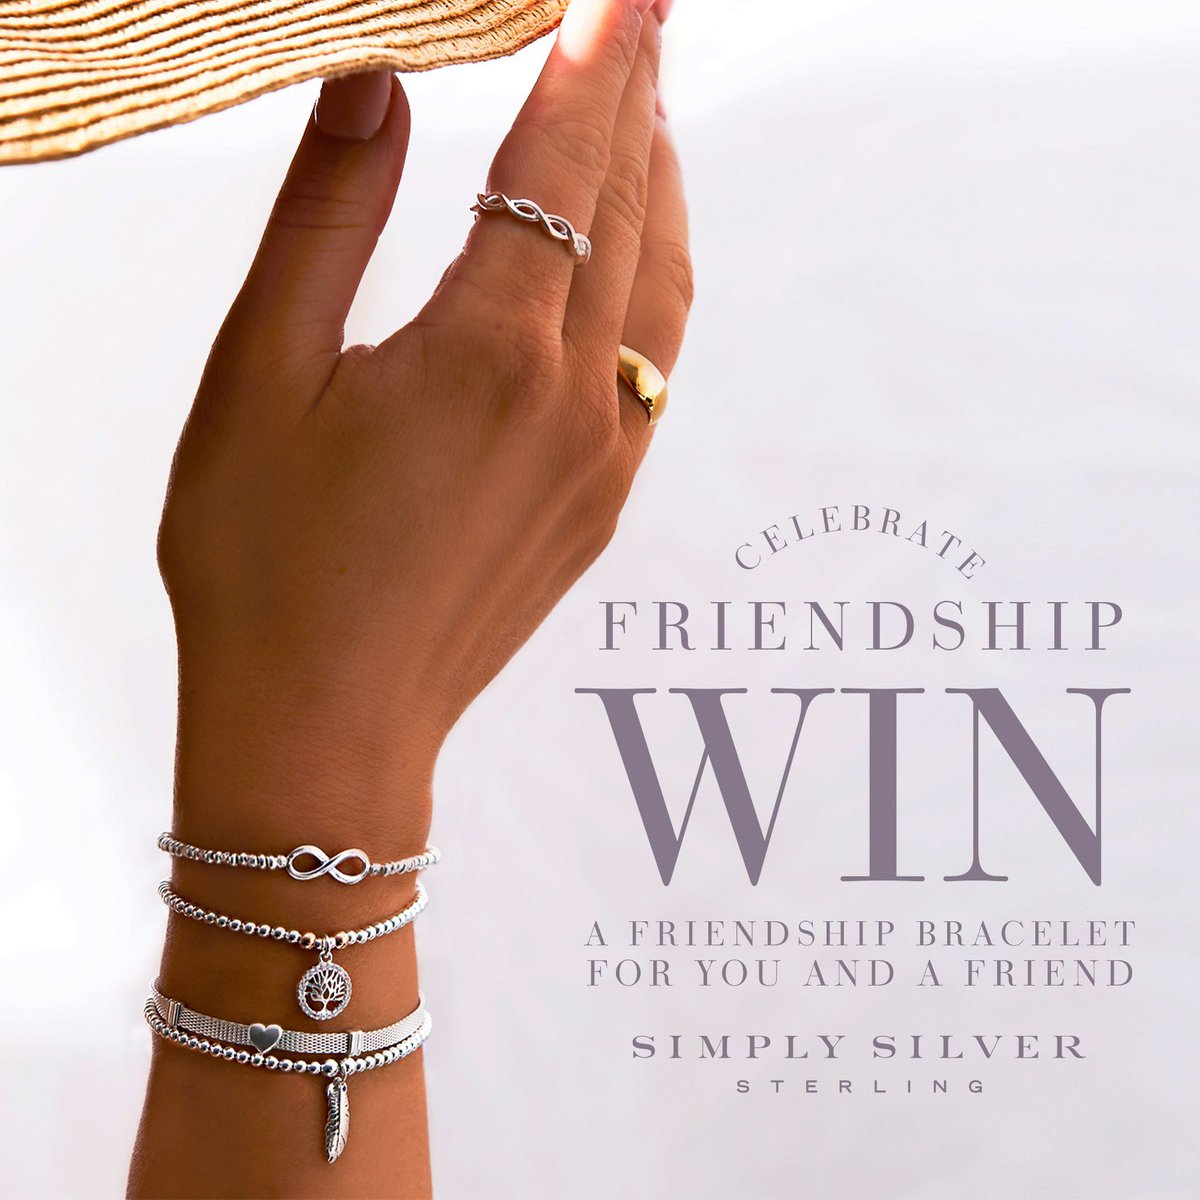 For an extra special treat for friends, send them @JonRichardJewel jewellery!  💍   To #win two of their Simply Silver special 925 sterling silver friendship bracelets, head to our Facebook: https://t.co/jY2CGIMqYH https://t.co/rs6YmBeS3v